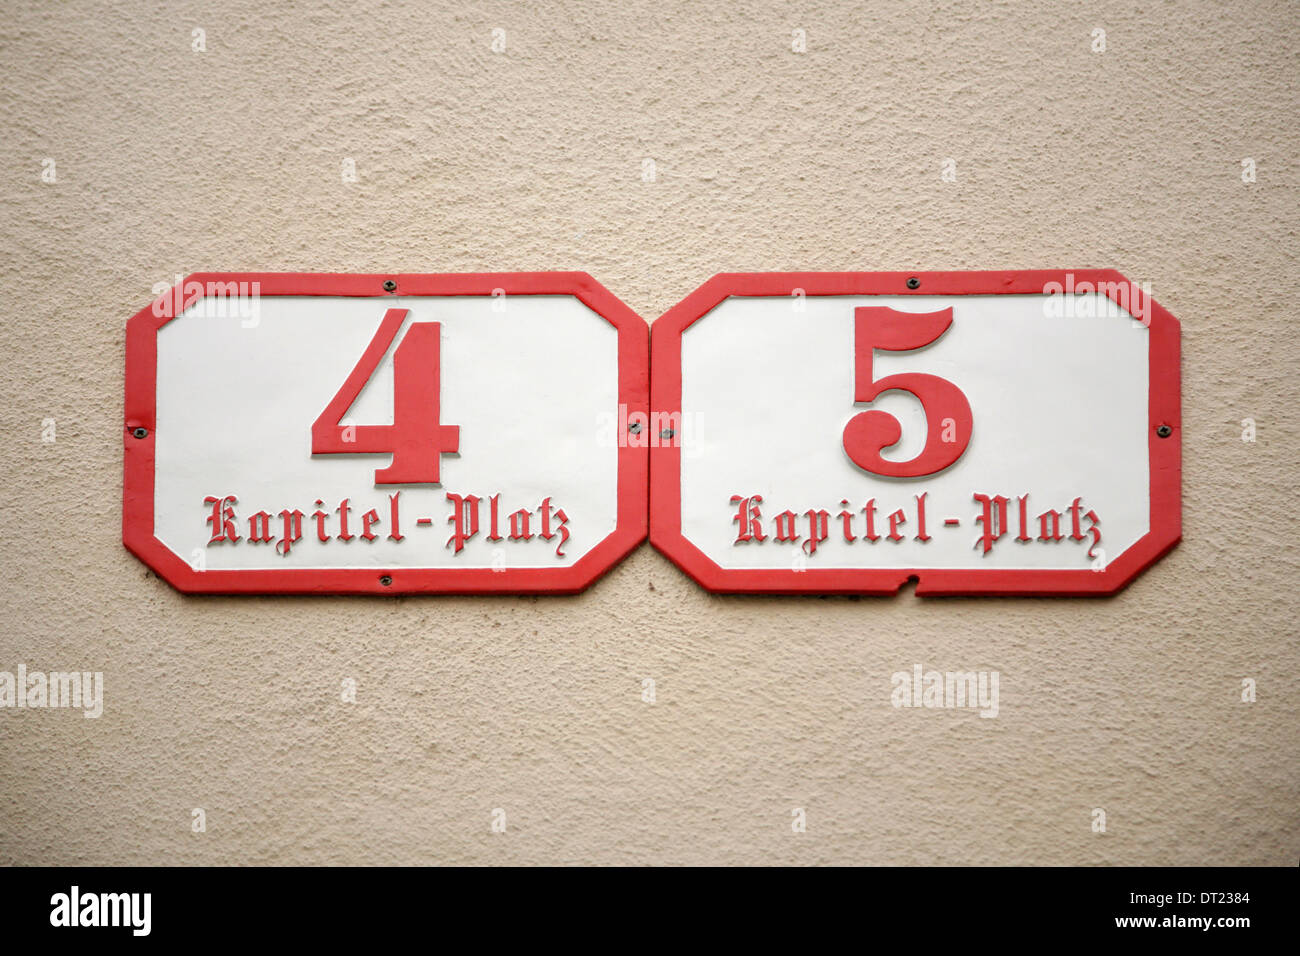 Numbers on house stock photos numbers on house stock images alamy house numbers on kapitel platz salzburg austria stock image malvernweather Image collections